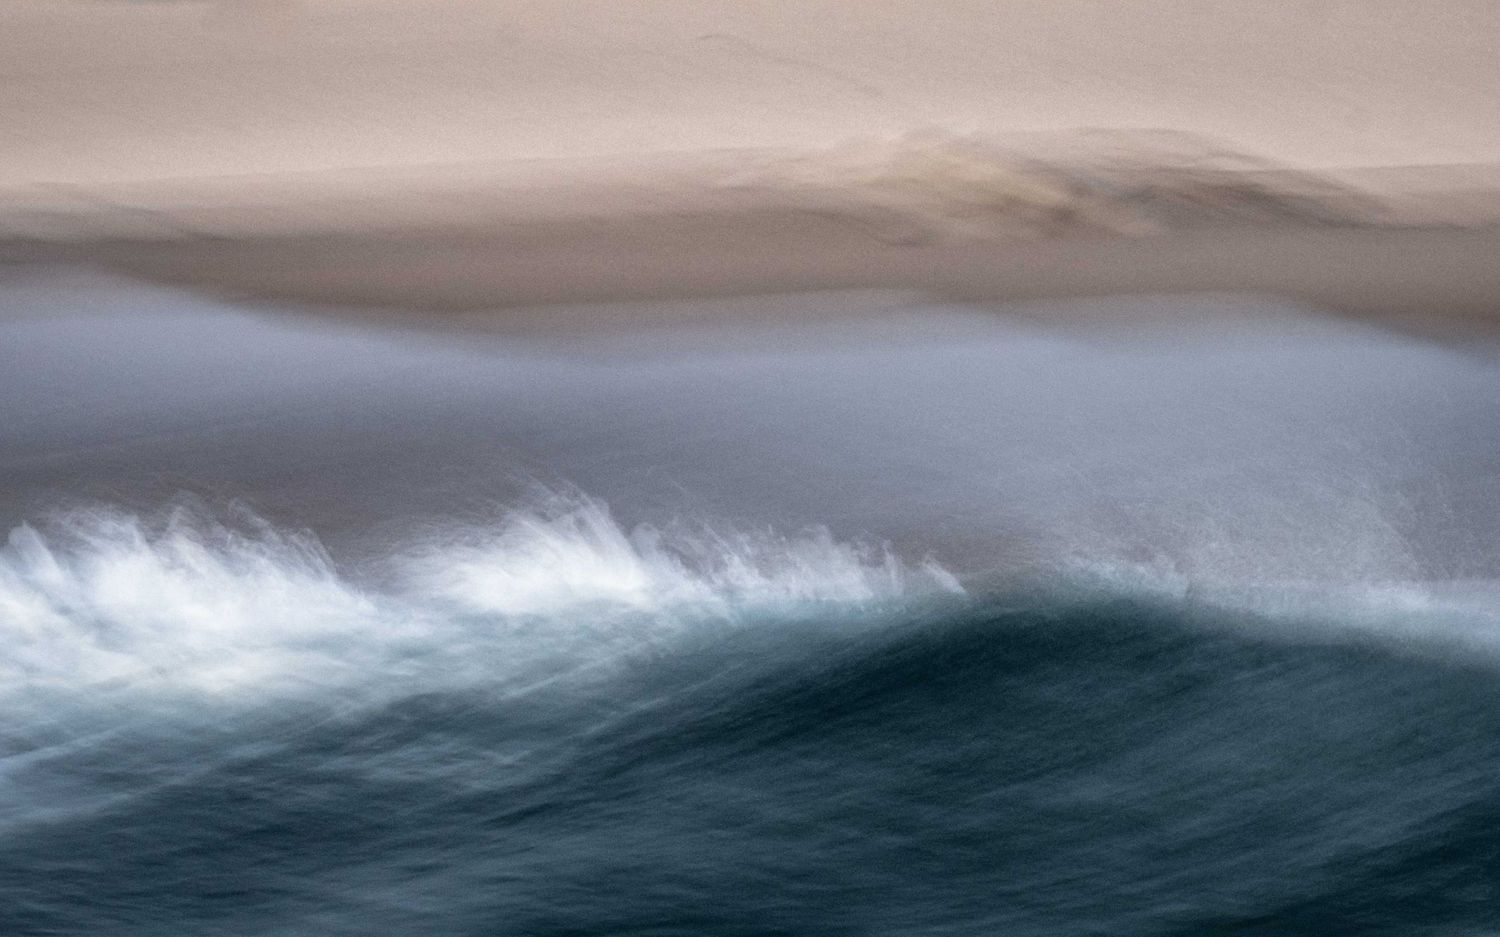 A beach's timeless waves, ethereal coastline and impressive skies, long exposure creates stunning beach photography.